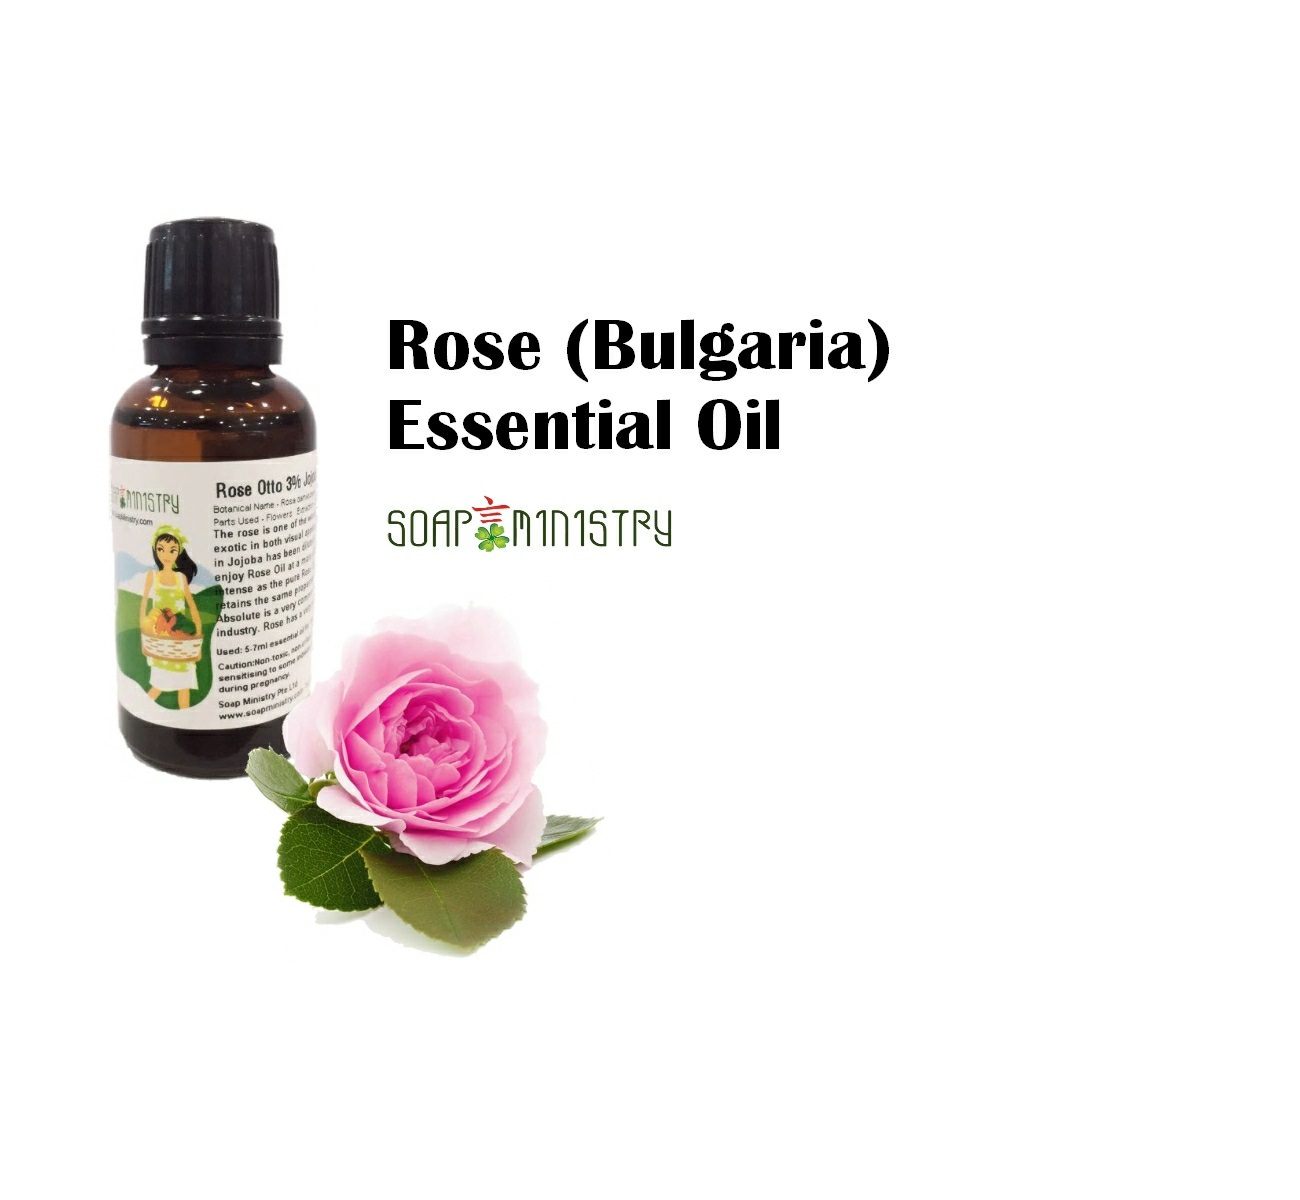 Rose Otto 3% Jojoba Essential Oil 30ml